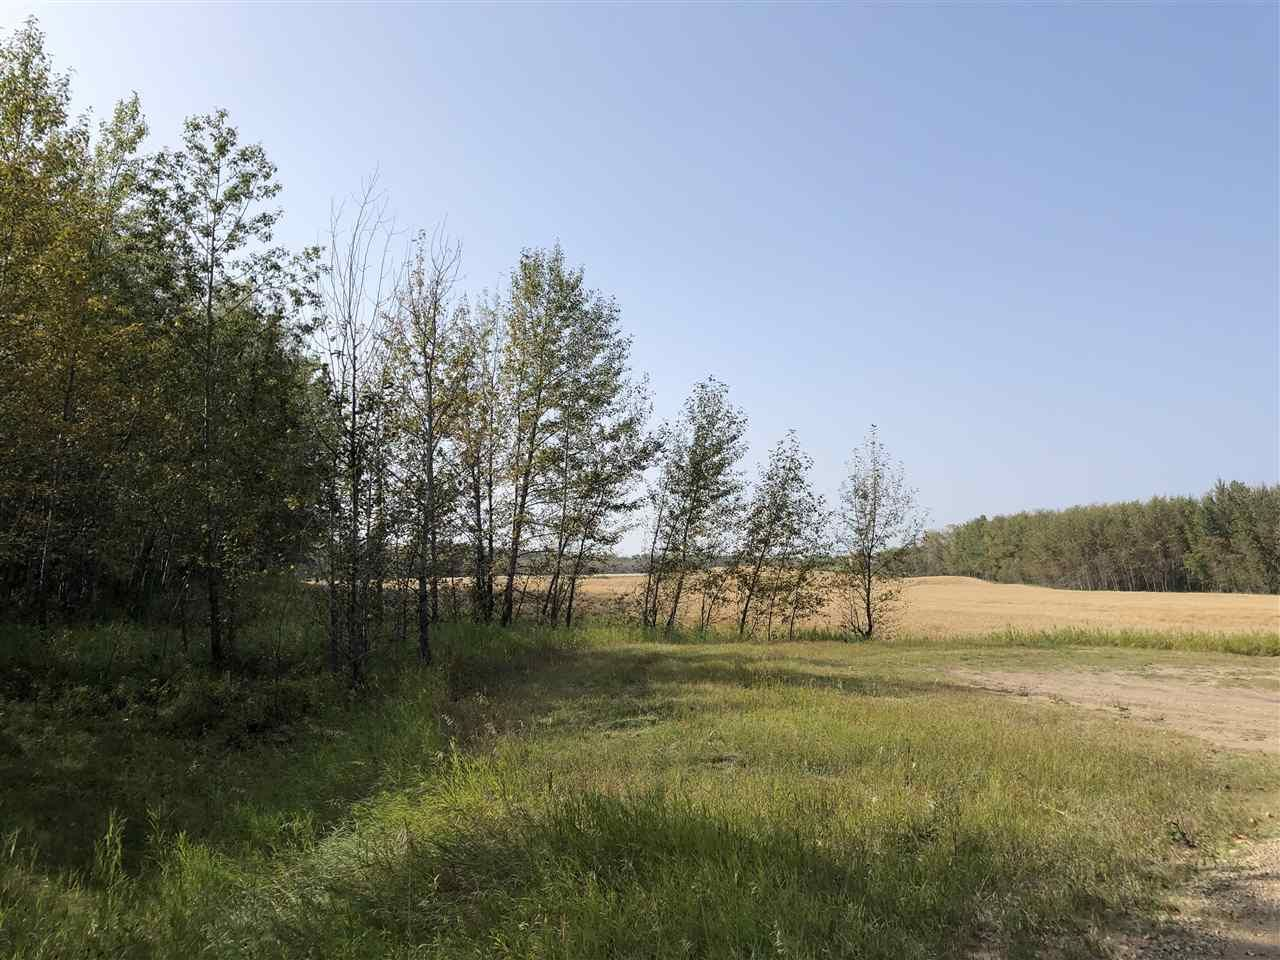 Photo 5: Photos: 0 26225 TWP Rd 511: Rural Parkland County Rural Land/Vacant Lot for sale : MLS®# E4216203